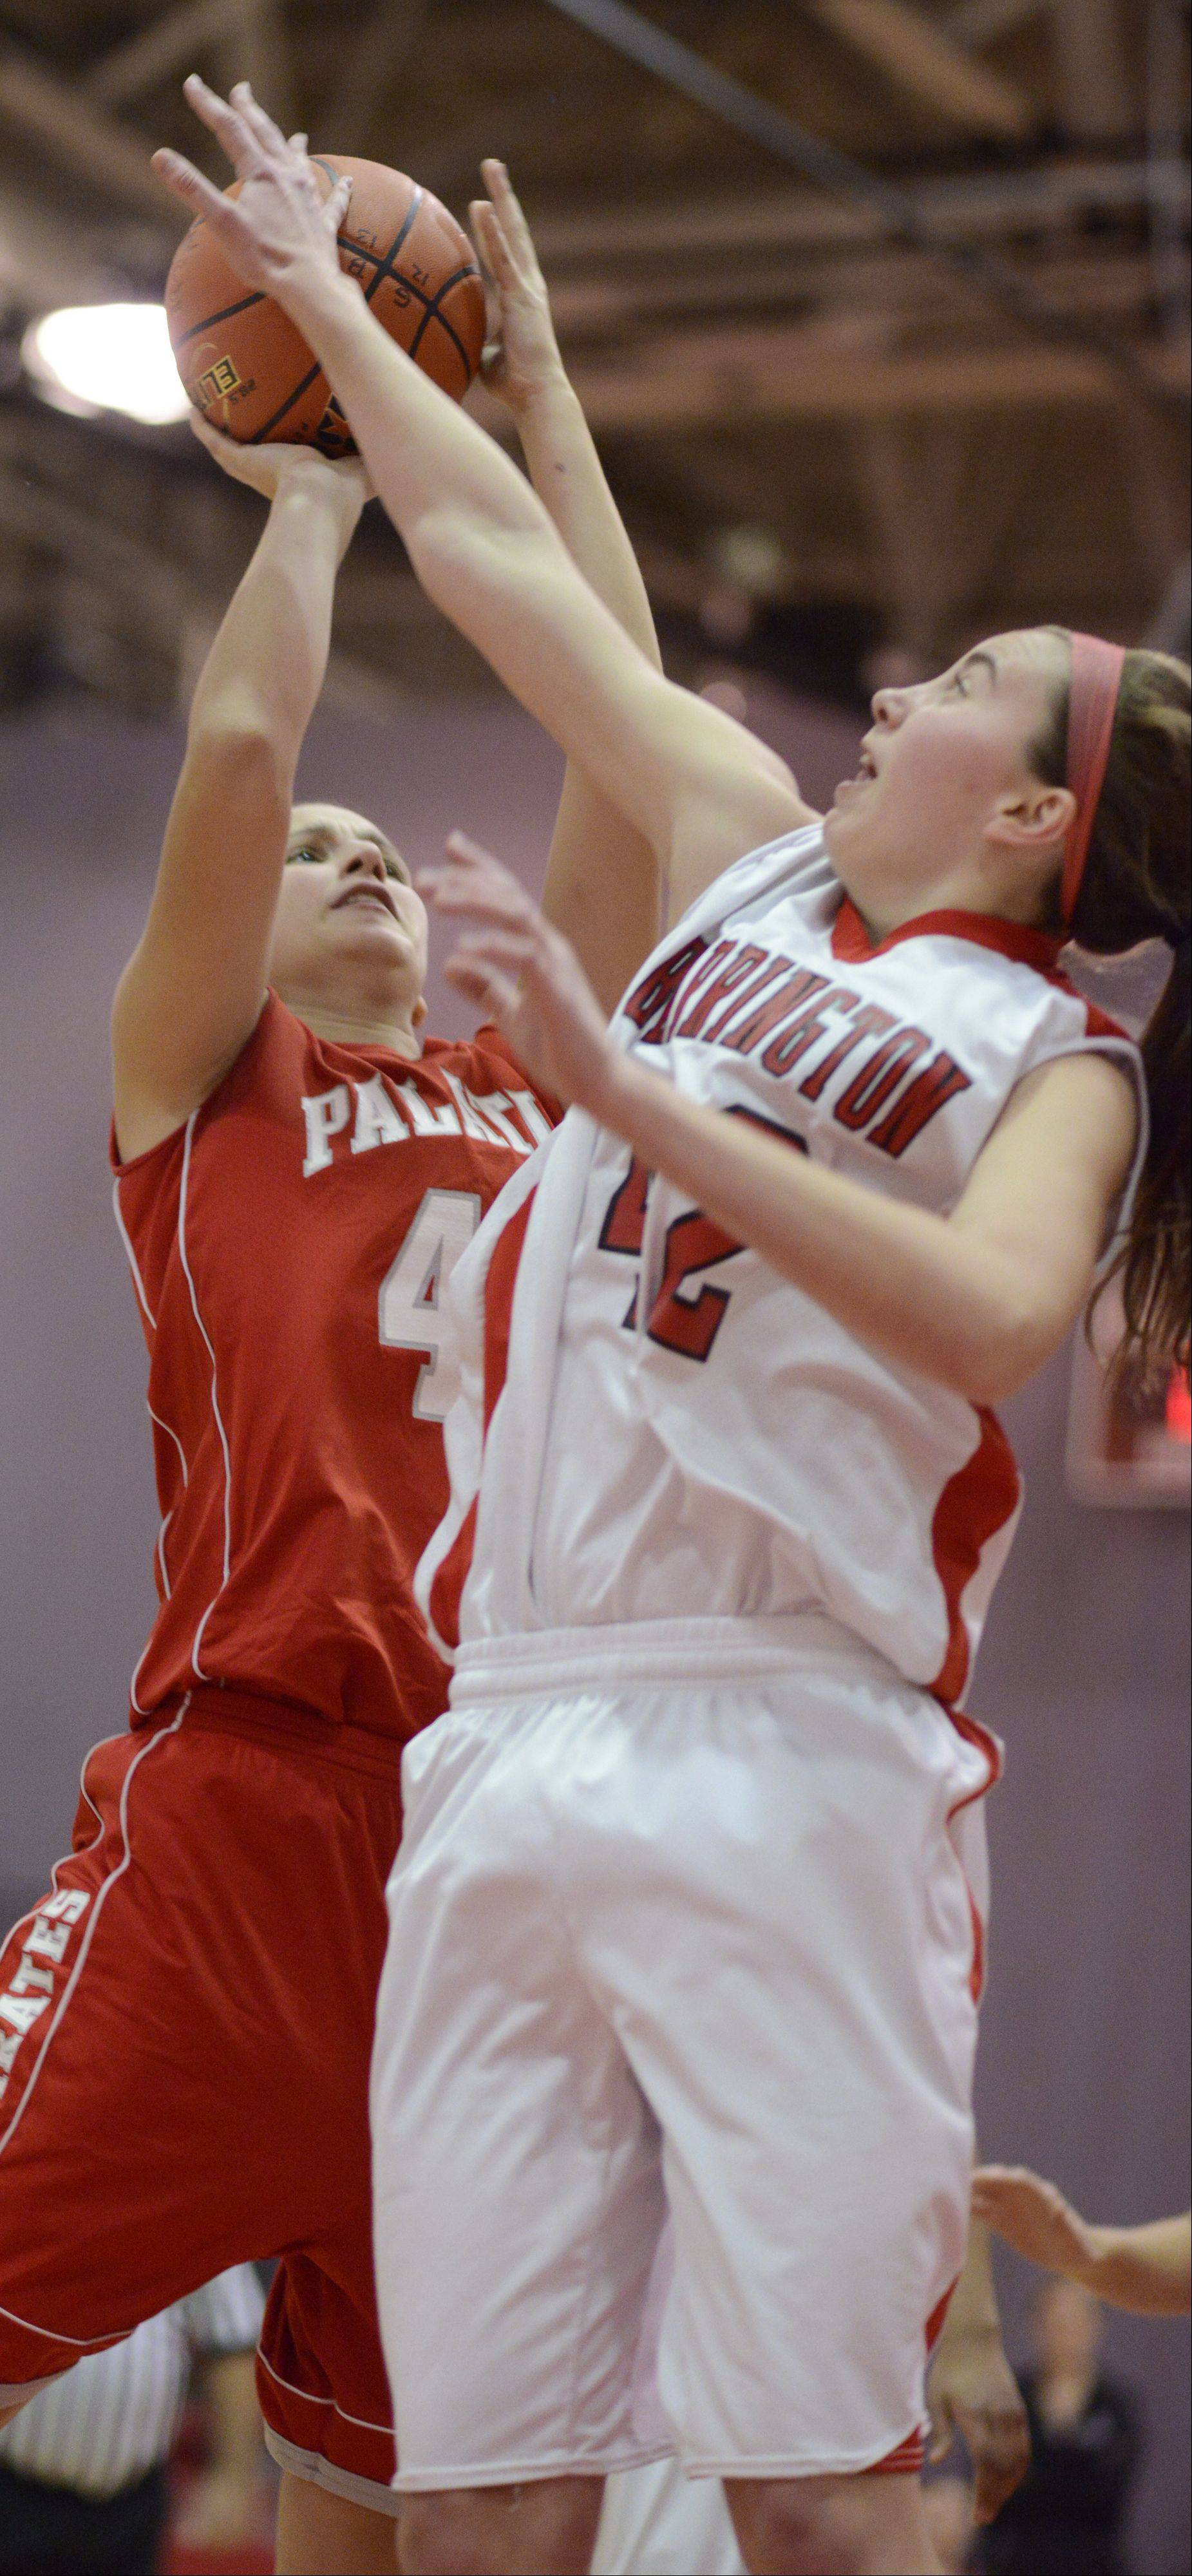 Images from the Palatine vs. Barrington girls basketball game on Tuesday, December 11th, in Barrington.